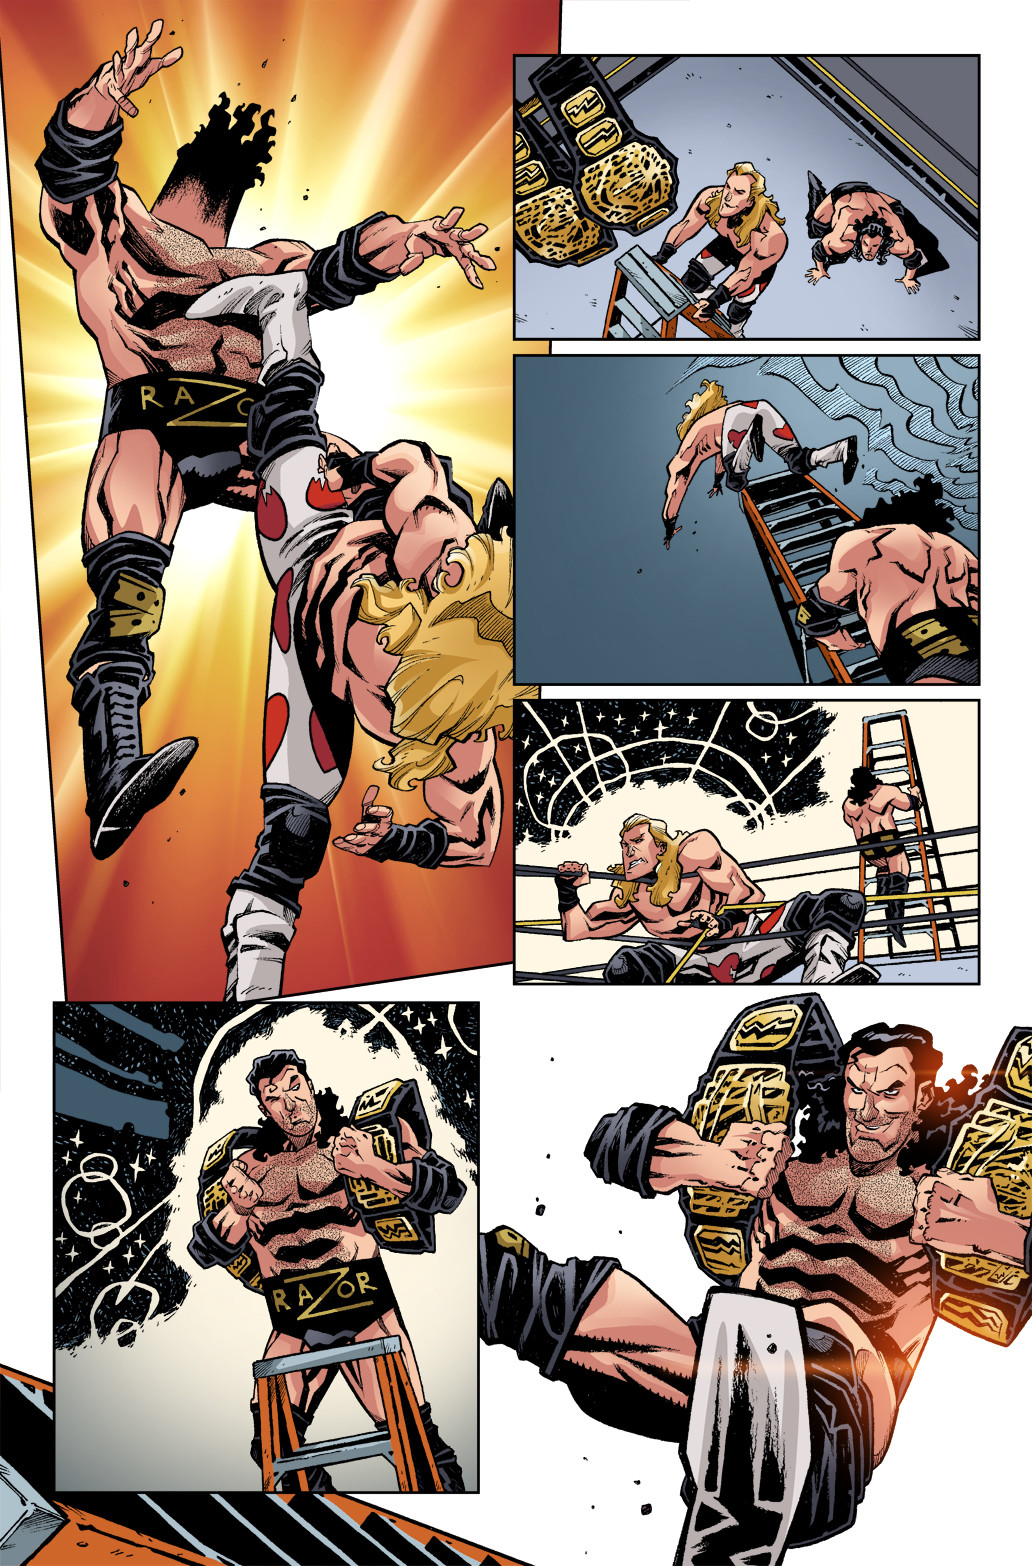 WWE - Wrestlemania Special, page 10